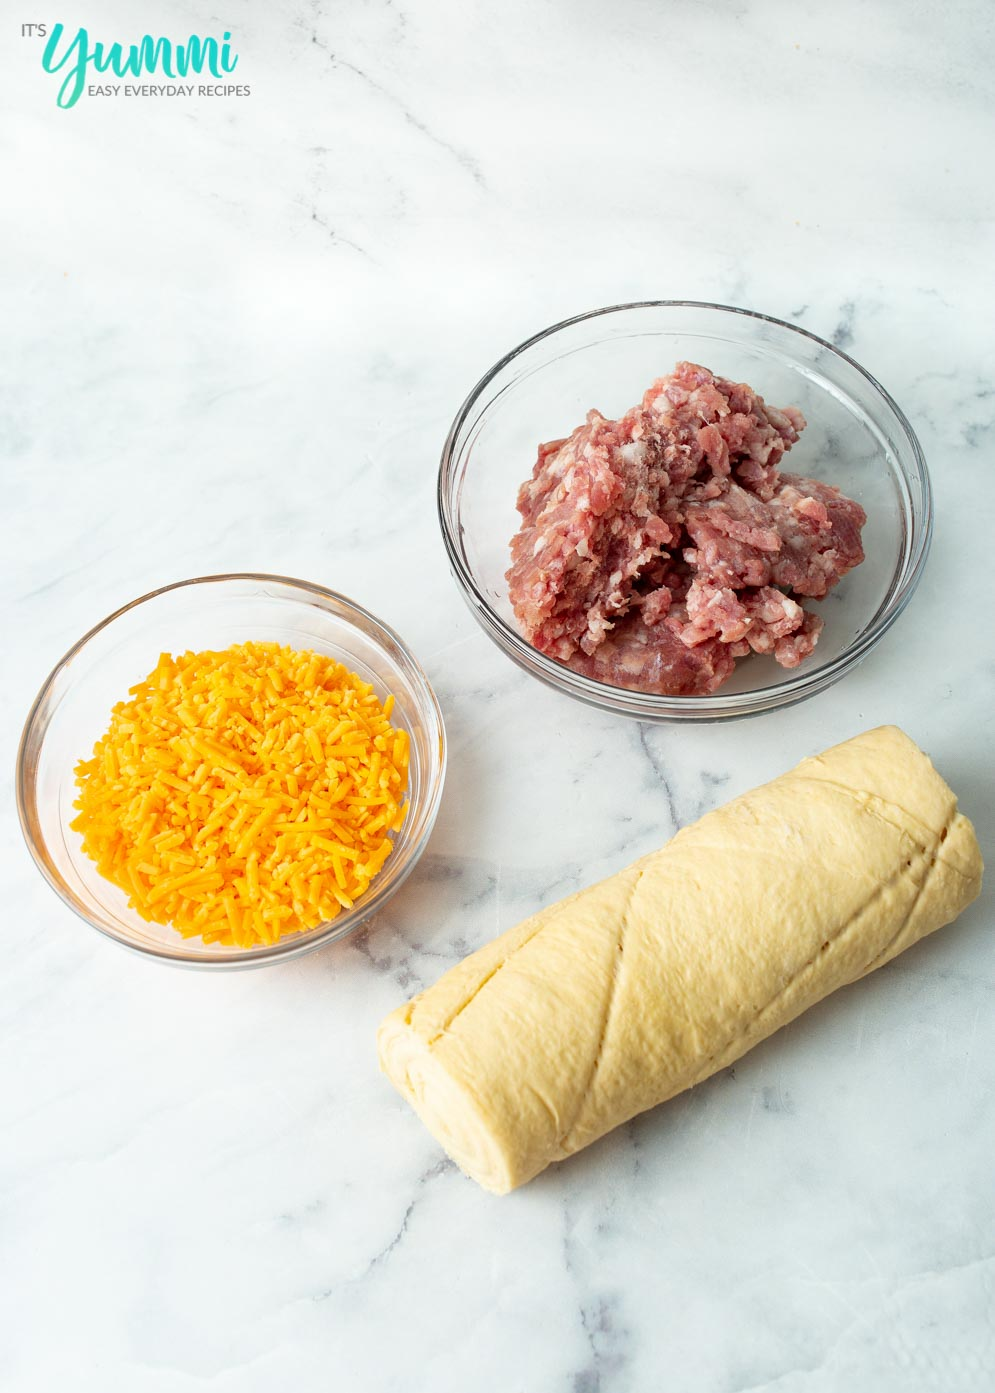 Ingredients for Sausage Biscuits (cheese, sausage and dough)laid out on table